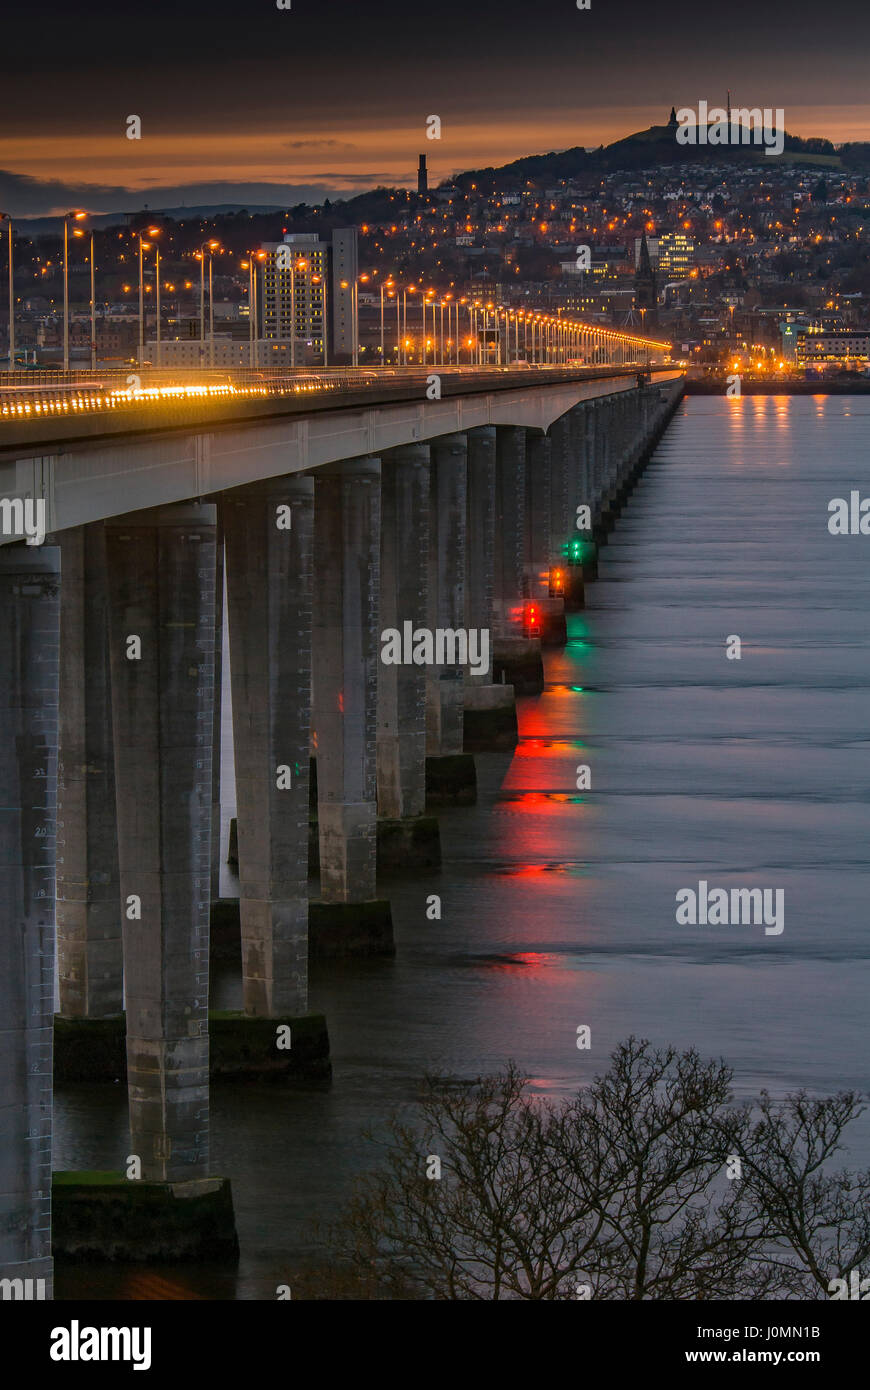 The Tay road bridge into Dundee at night. - Stock Image